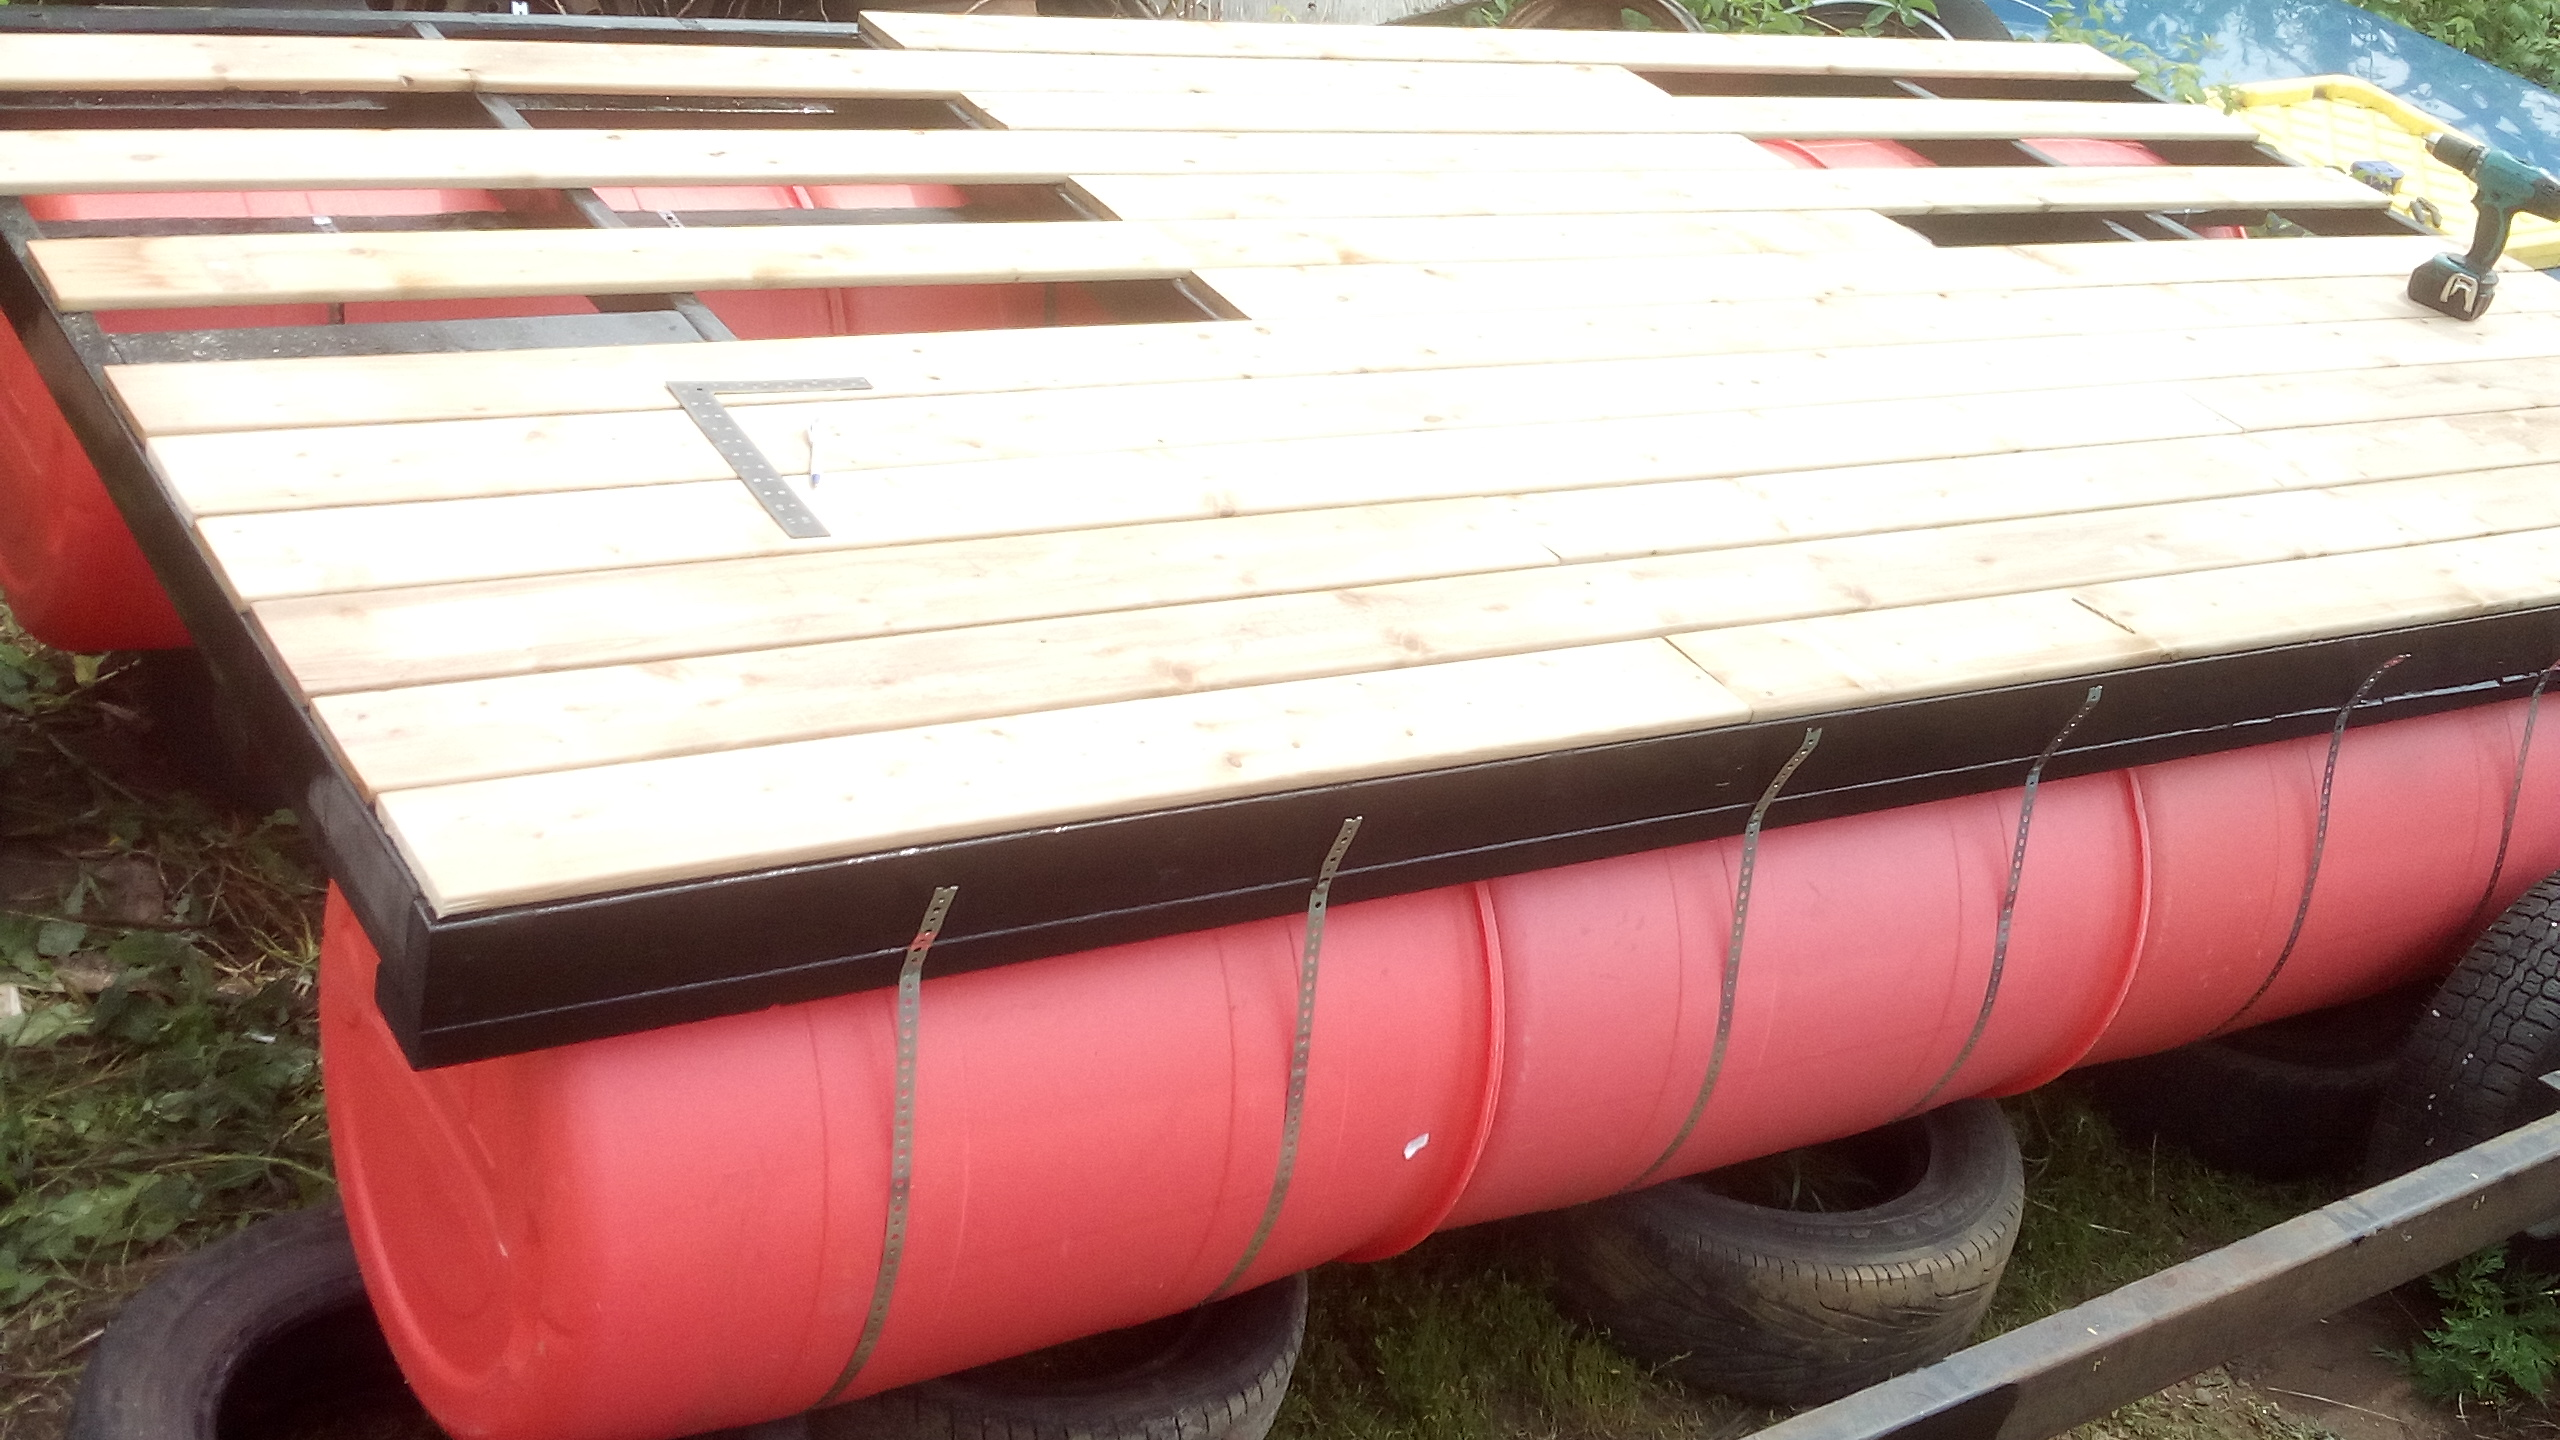 55 Gallon Barrel Pontoon Boat / Dock / Barge (Upcycling